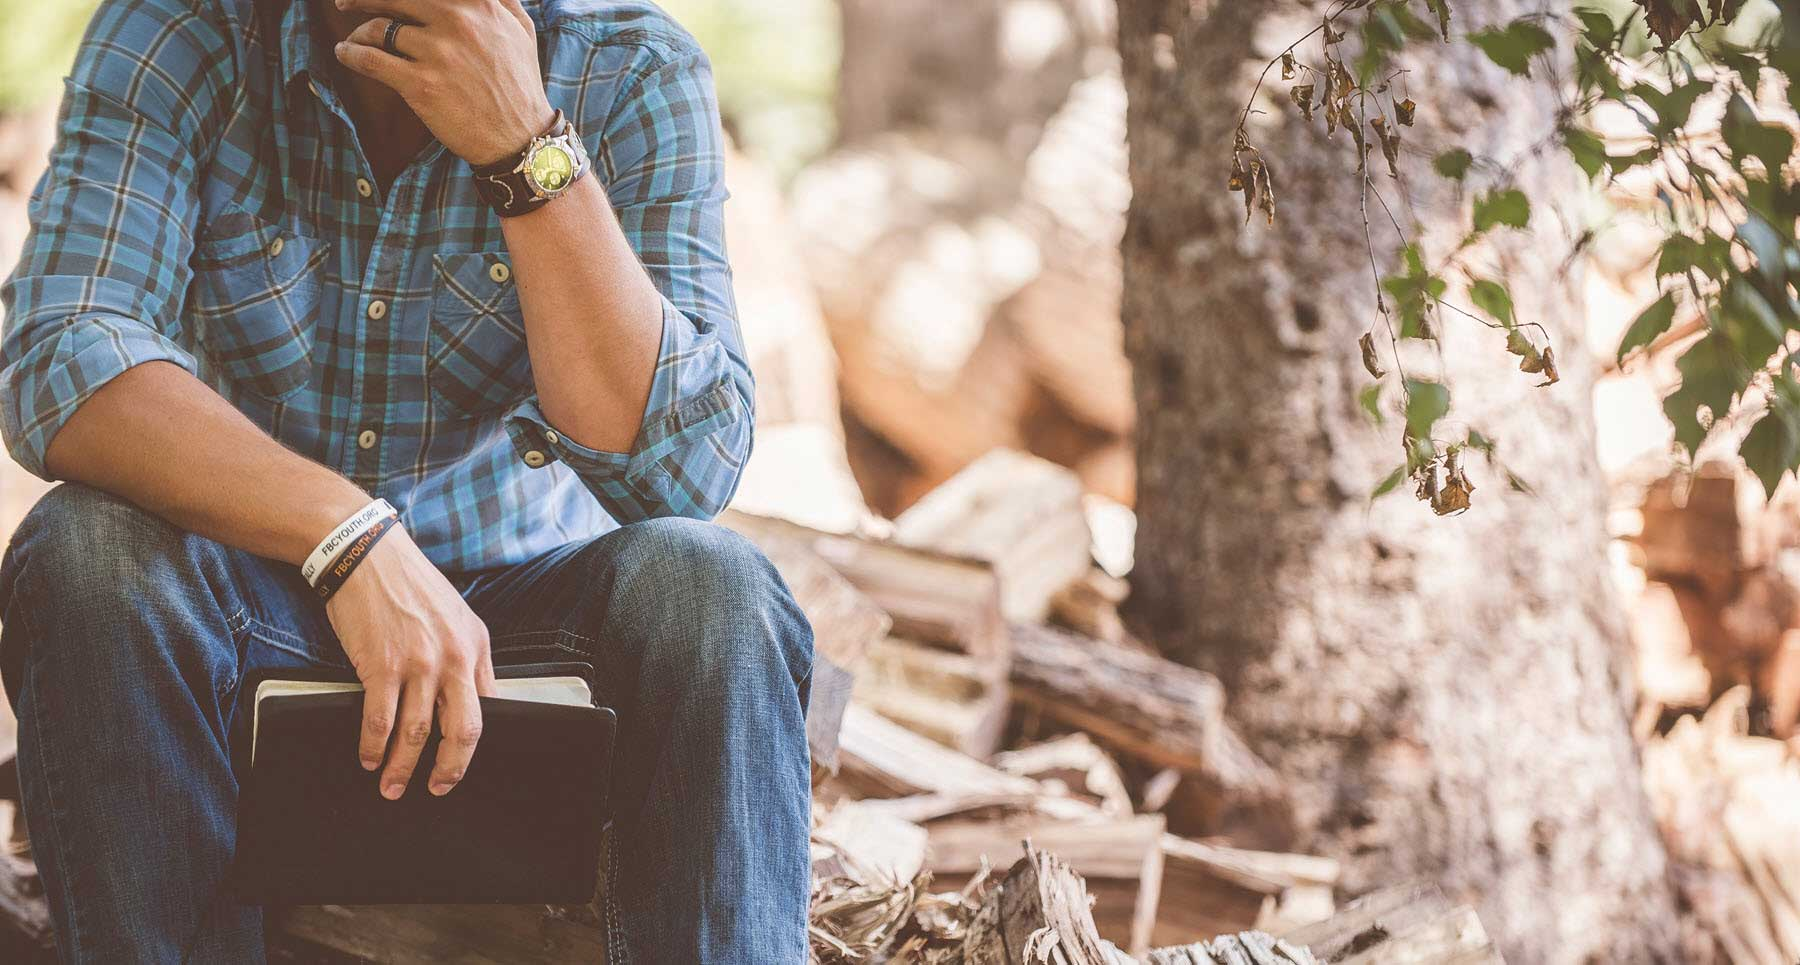 reading bible outside struggling with depression and anxiety pastor attempted suicide